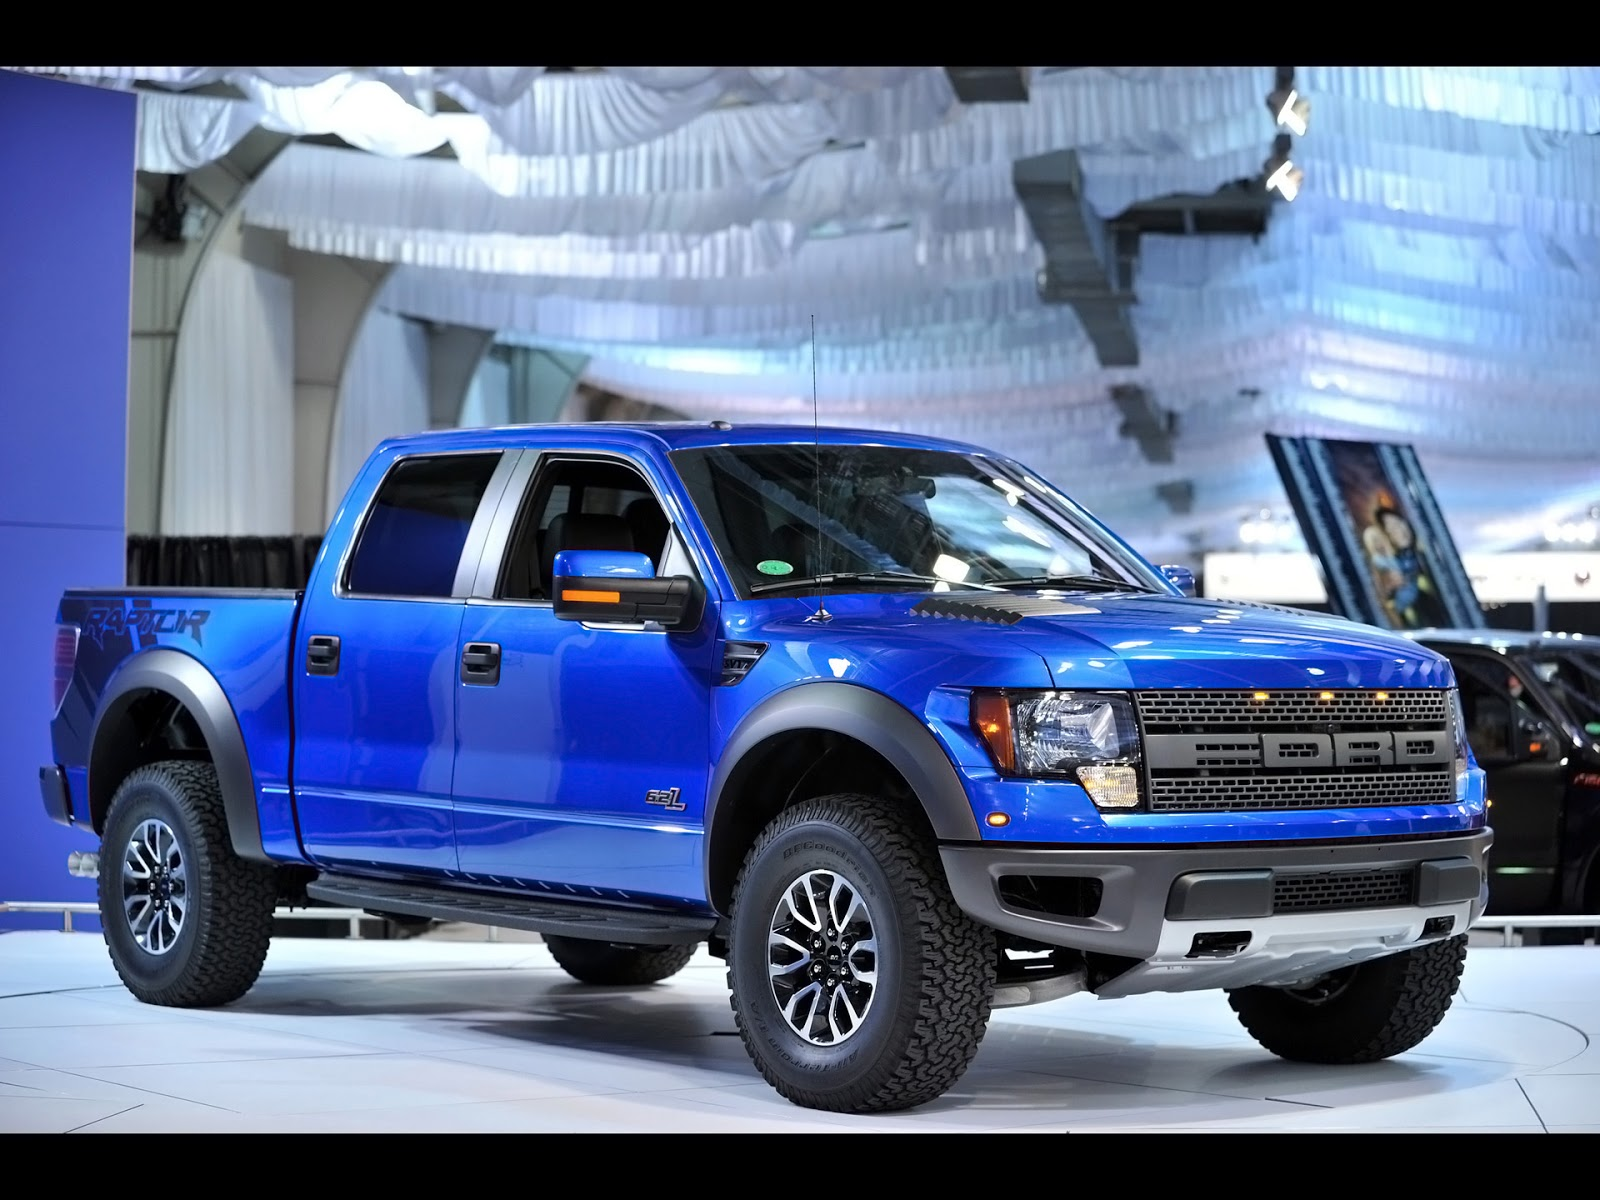 Ford F150 Shelby >> Ford Cars: 2012 ford f-150 svt raptor